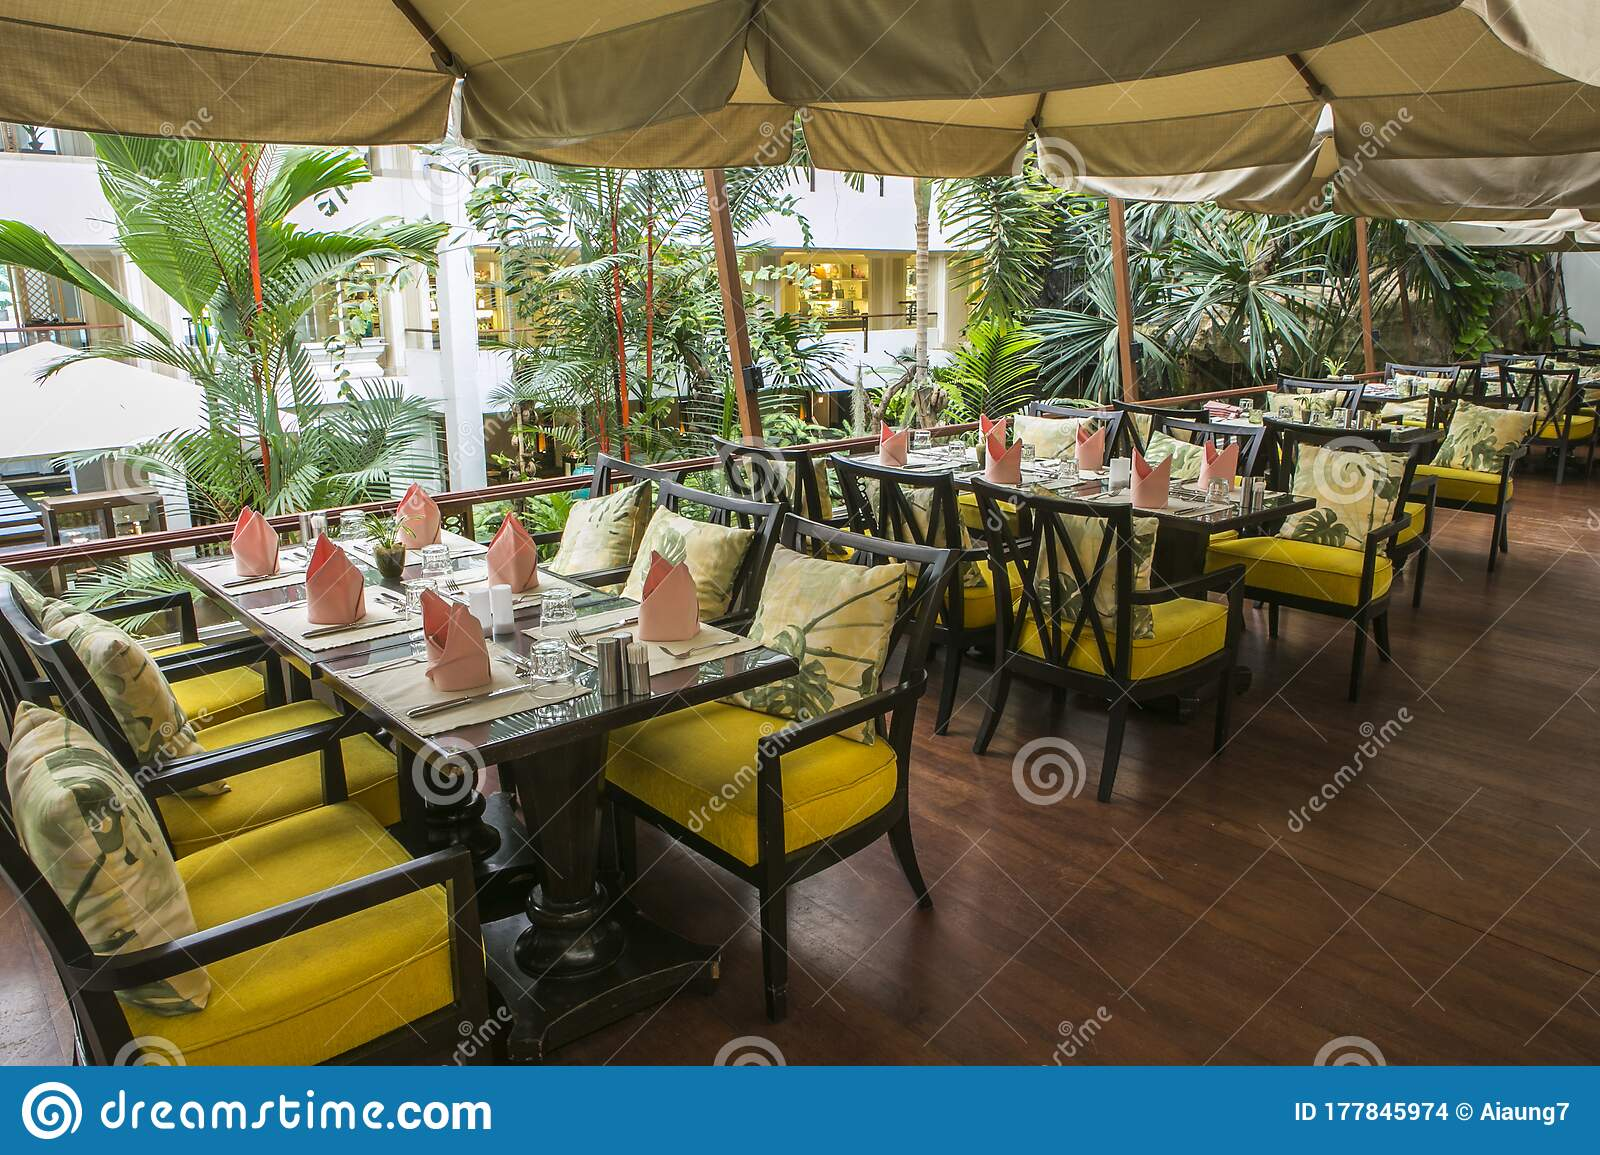 Chon Buri Thailand March 28 2015 Wood Stair Way Down To Tropical Garden Luxury Indoor Green House Editorial Stock Image Image Of Cushion Dining 177845974